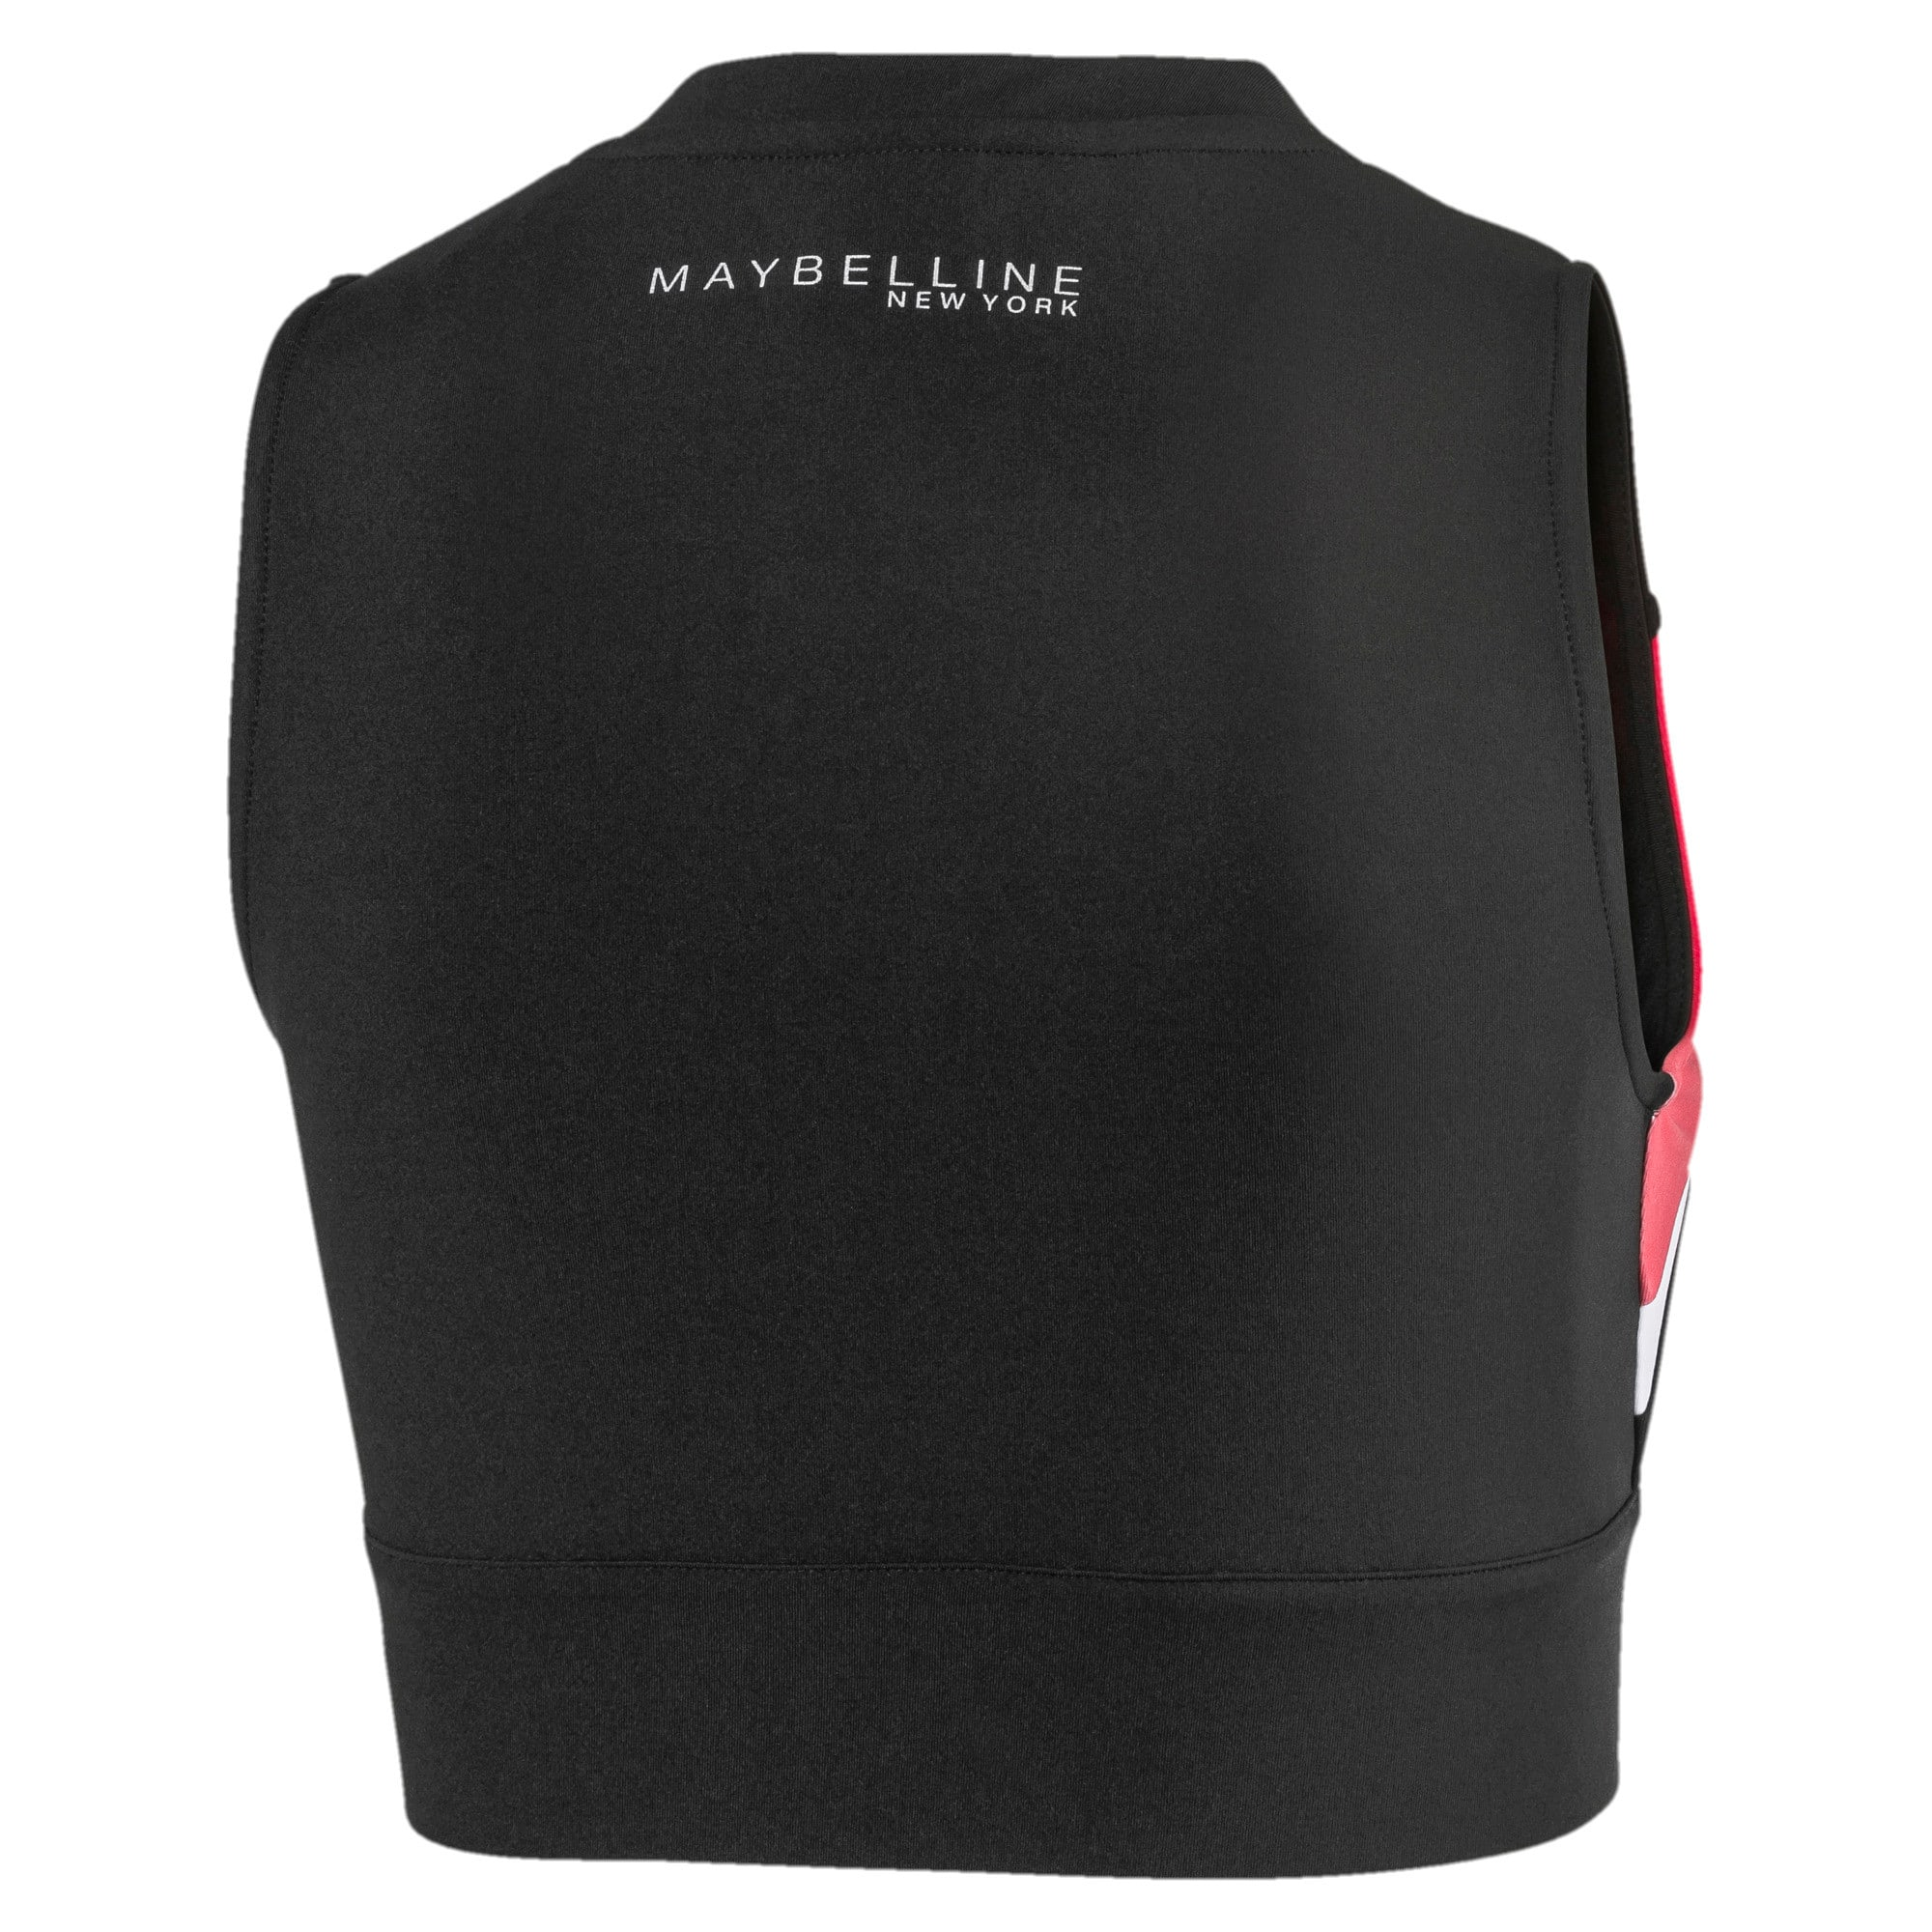 Thumbnail 2 of PUMA x MAYBELLINE Women's Crop Top, Puma Black, medium